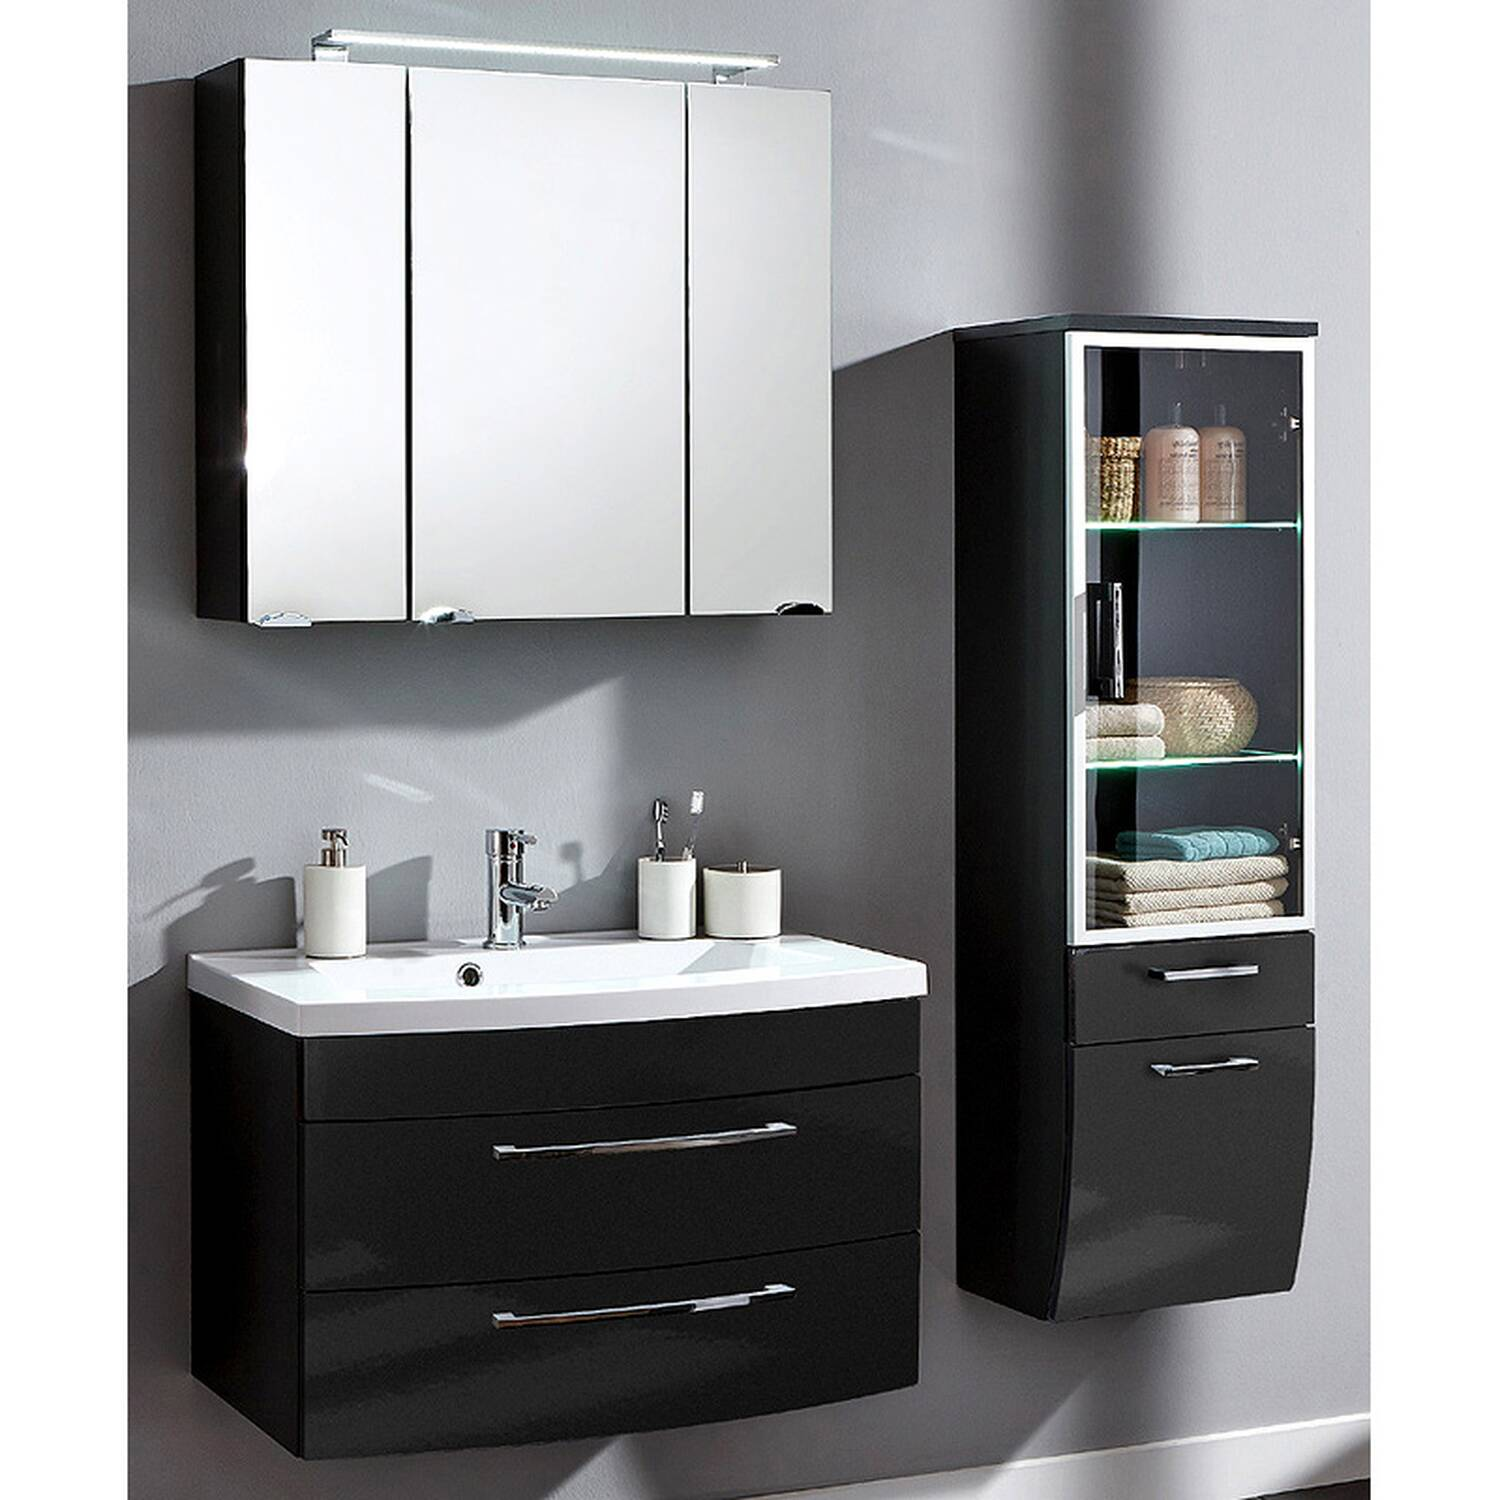 badm bel set rimao 02 hochglanz anthrazit 3 tei. Black Bedroom Furniture Sets. Home Design Ideas